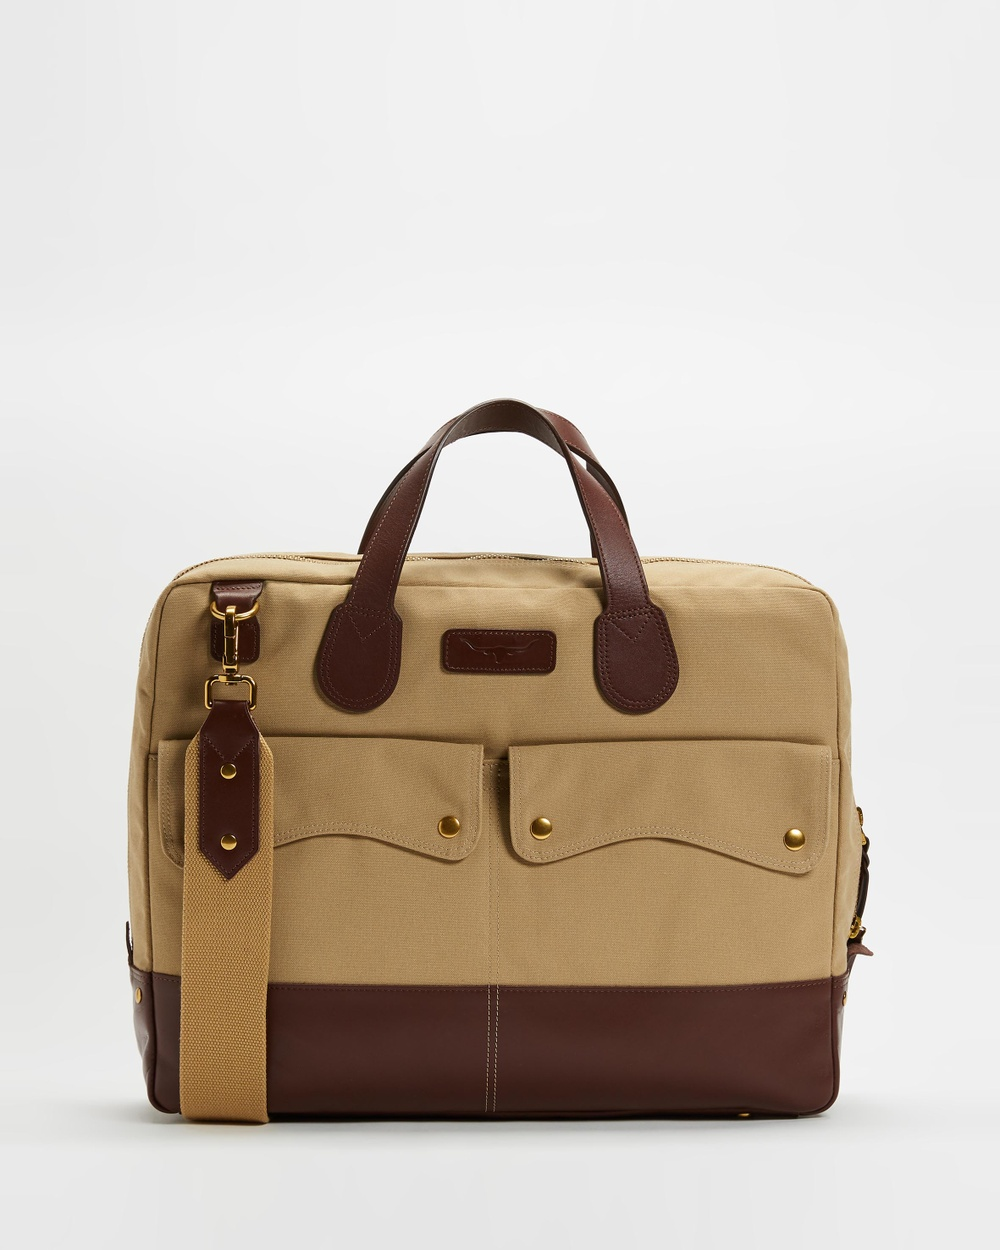 R.M.Williams Gippsland Brief case Bag Accessories Taupe & Whisky